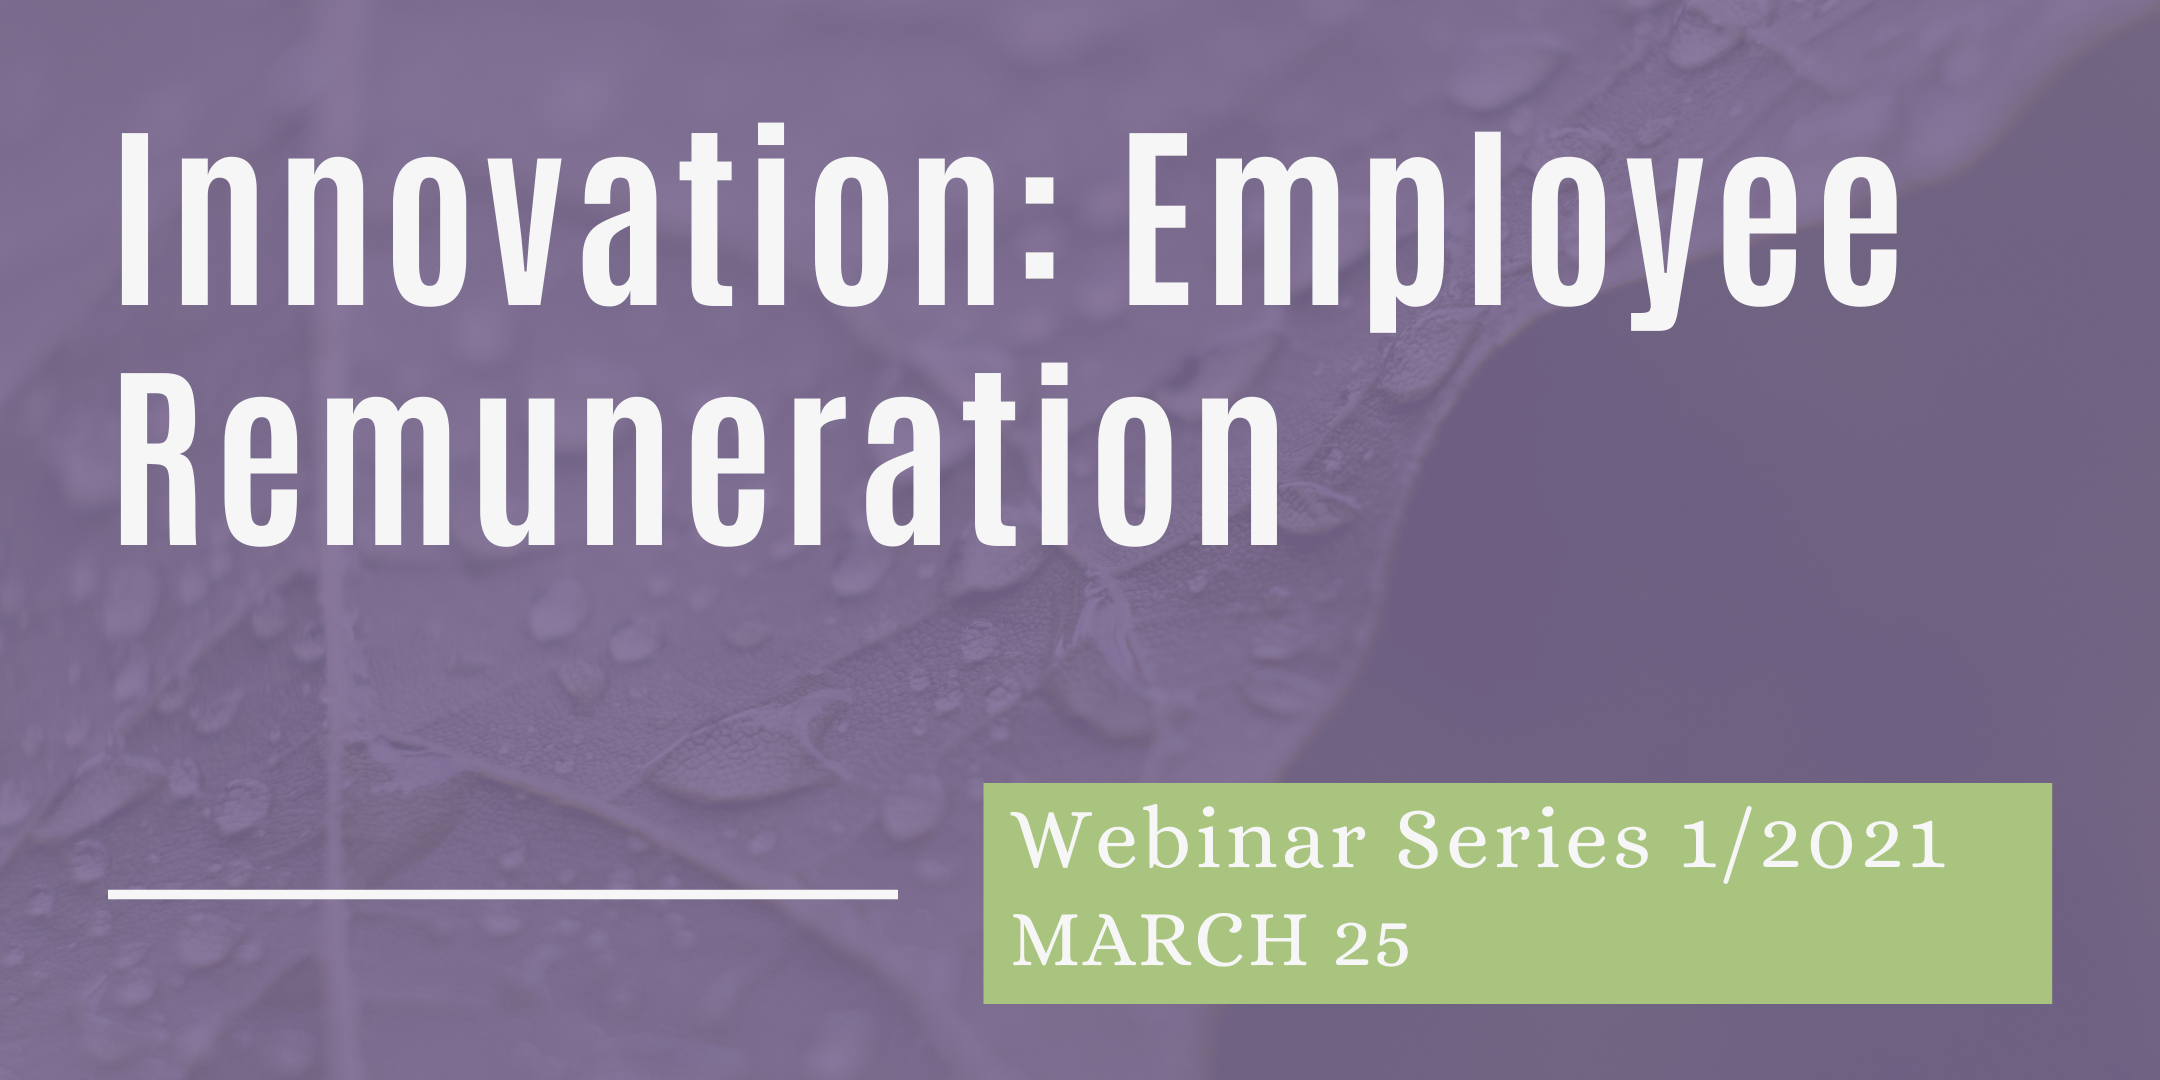 Webinar: Employee Remuneration for Innovation